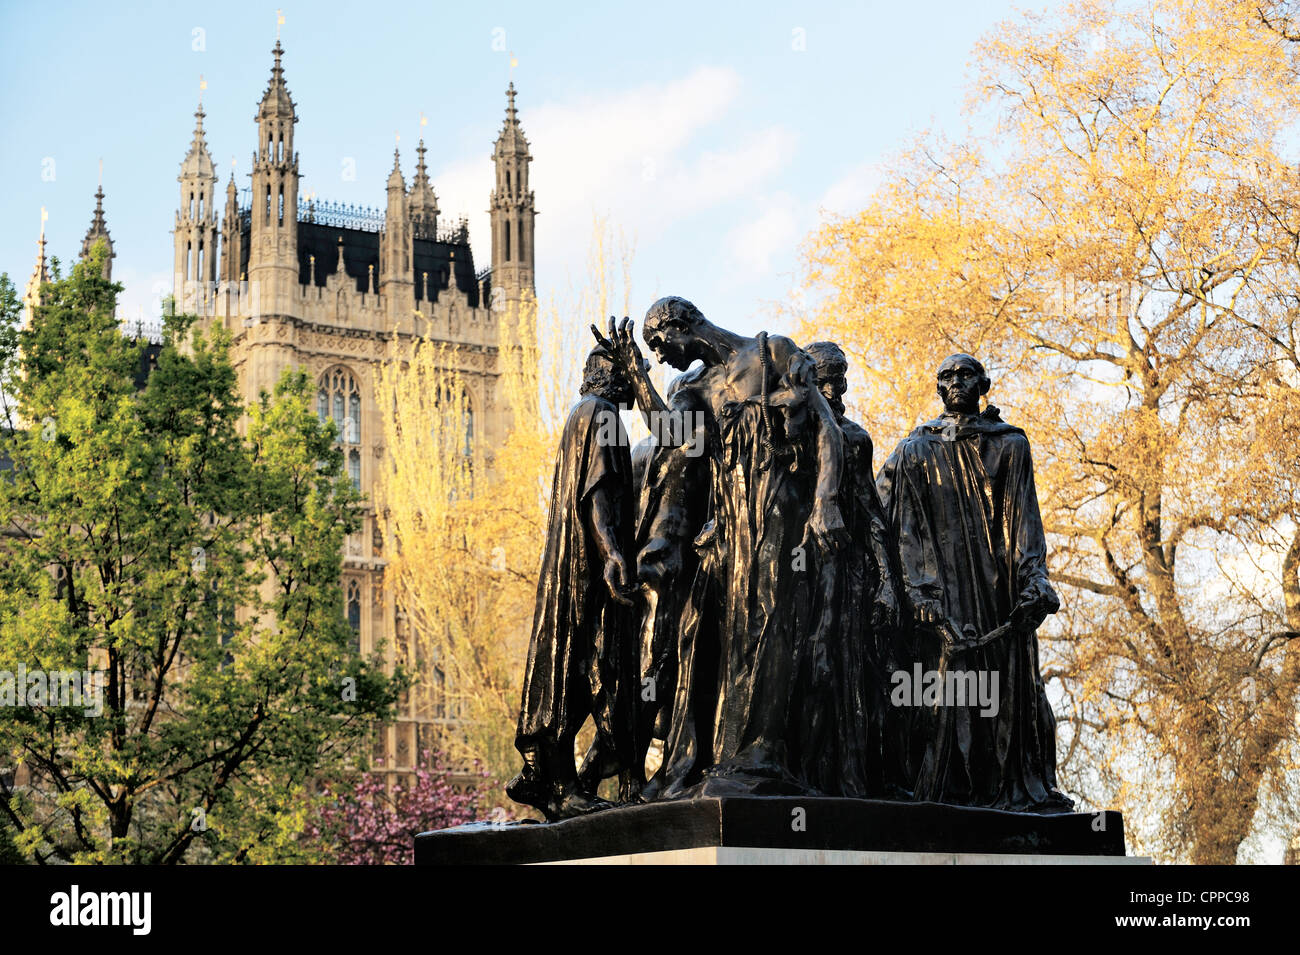 The Burghers of Calais. Statue by Rodin in Victoria Tower Gardens, Westminster, London. Shows episode in the Hundred - Stock Image